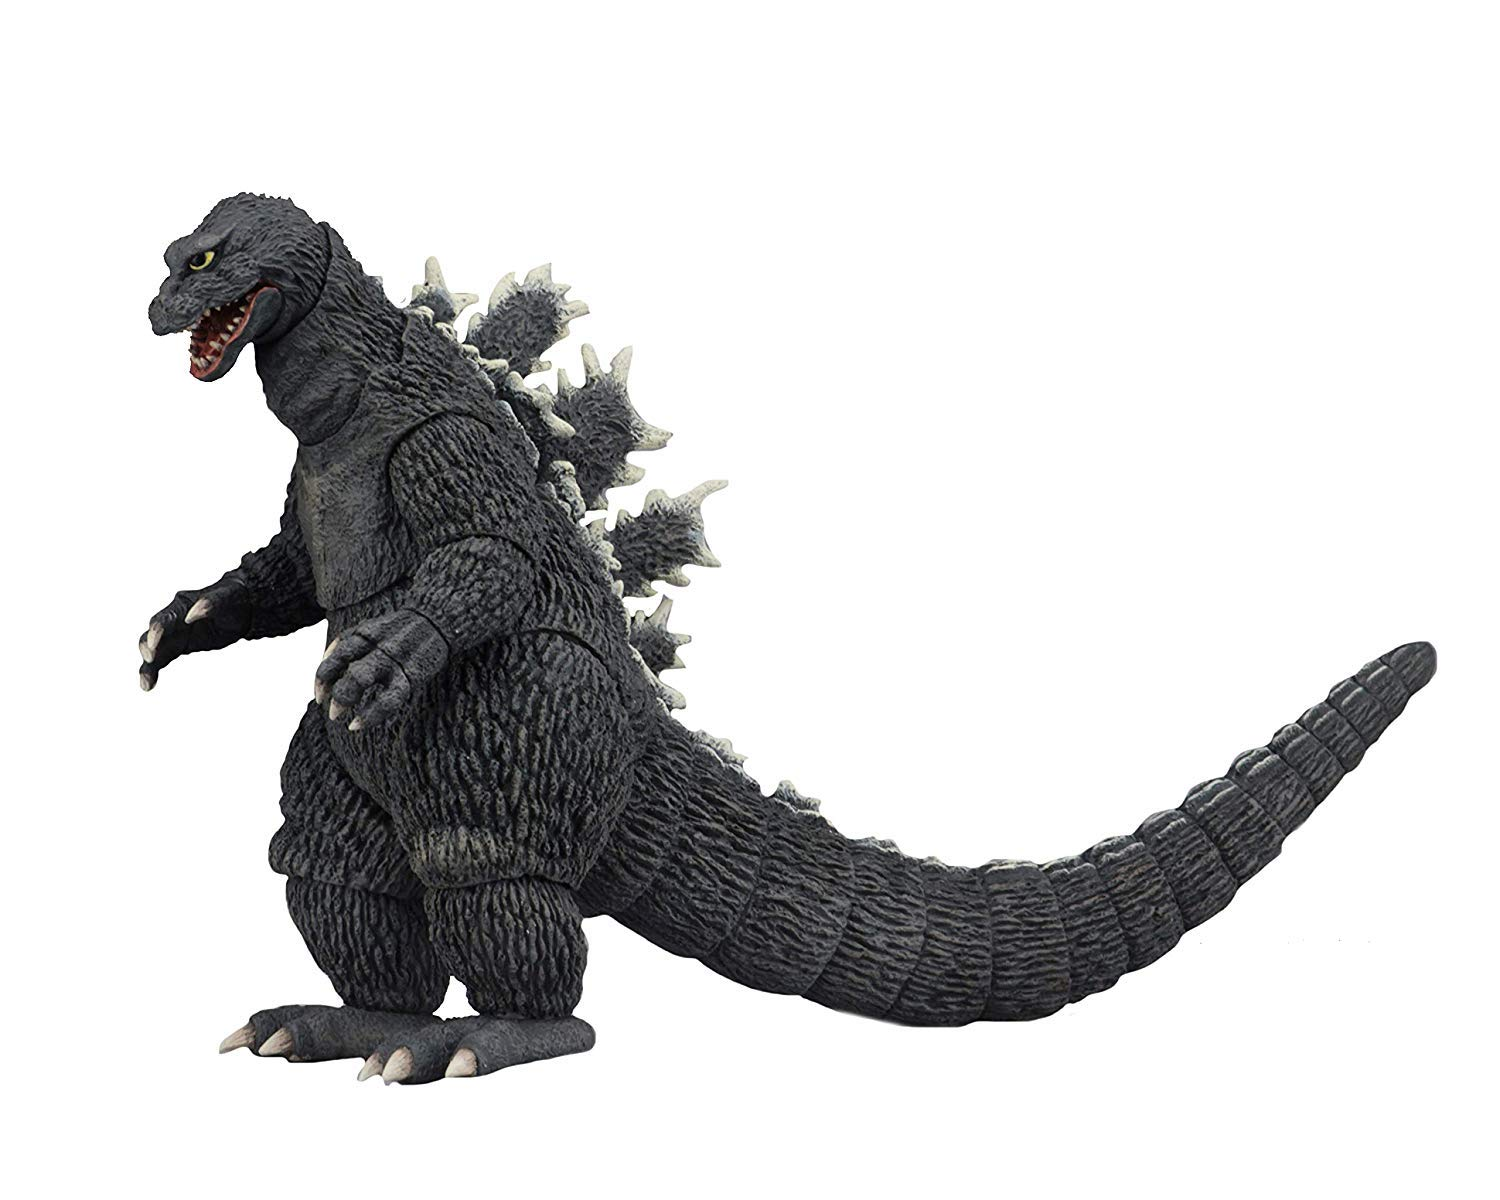 NECA Godzilla – 12″ Head to Tail Action Figure – Godzilla (King Kong vs. Godzilla 1962 Movie)